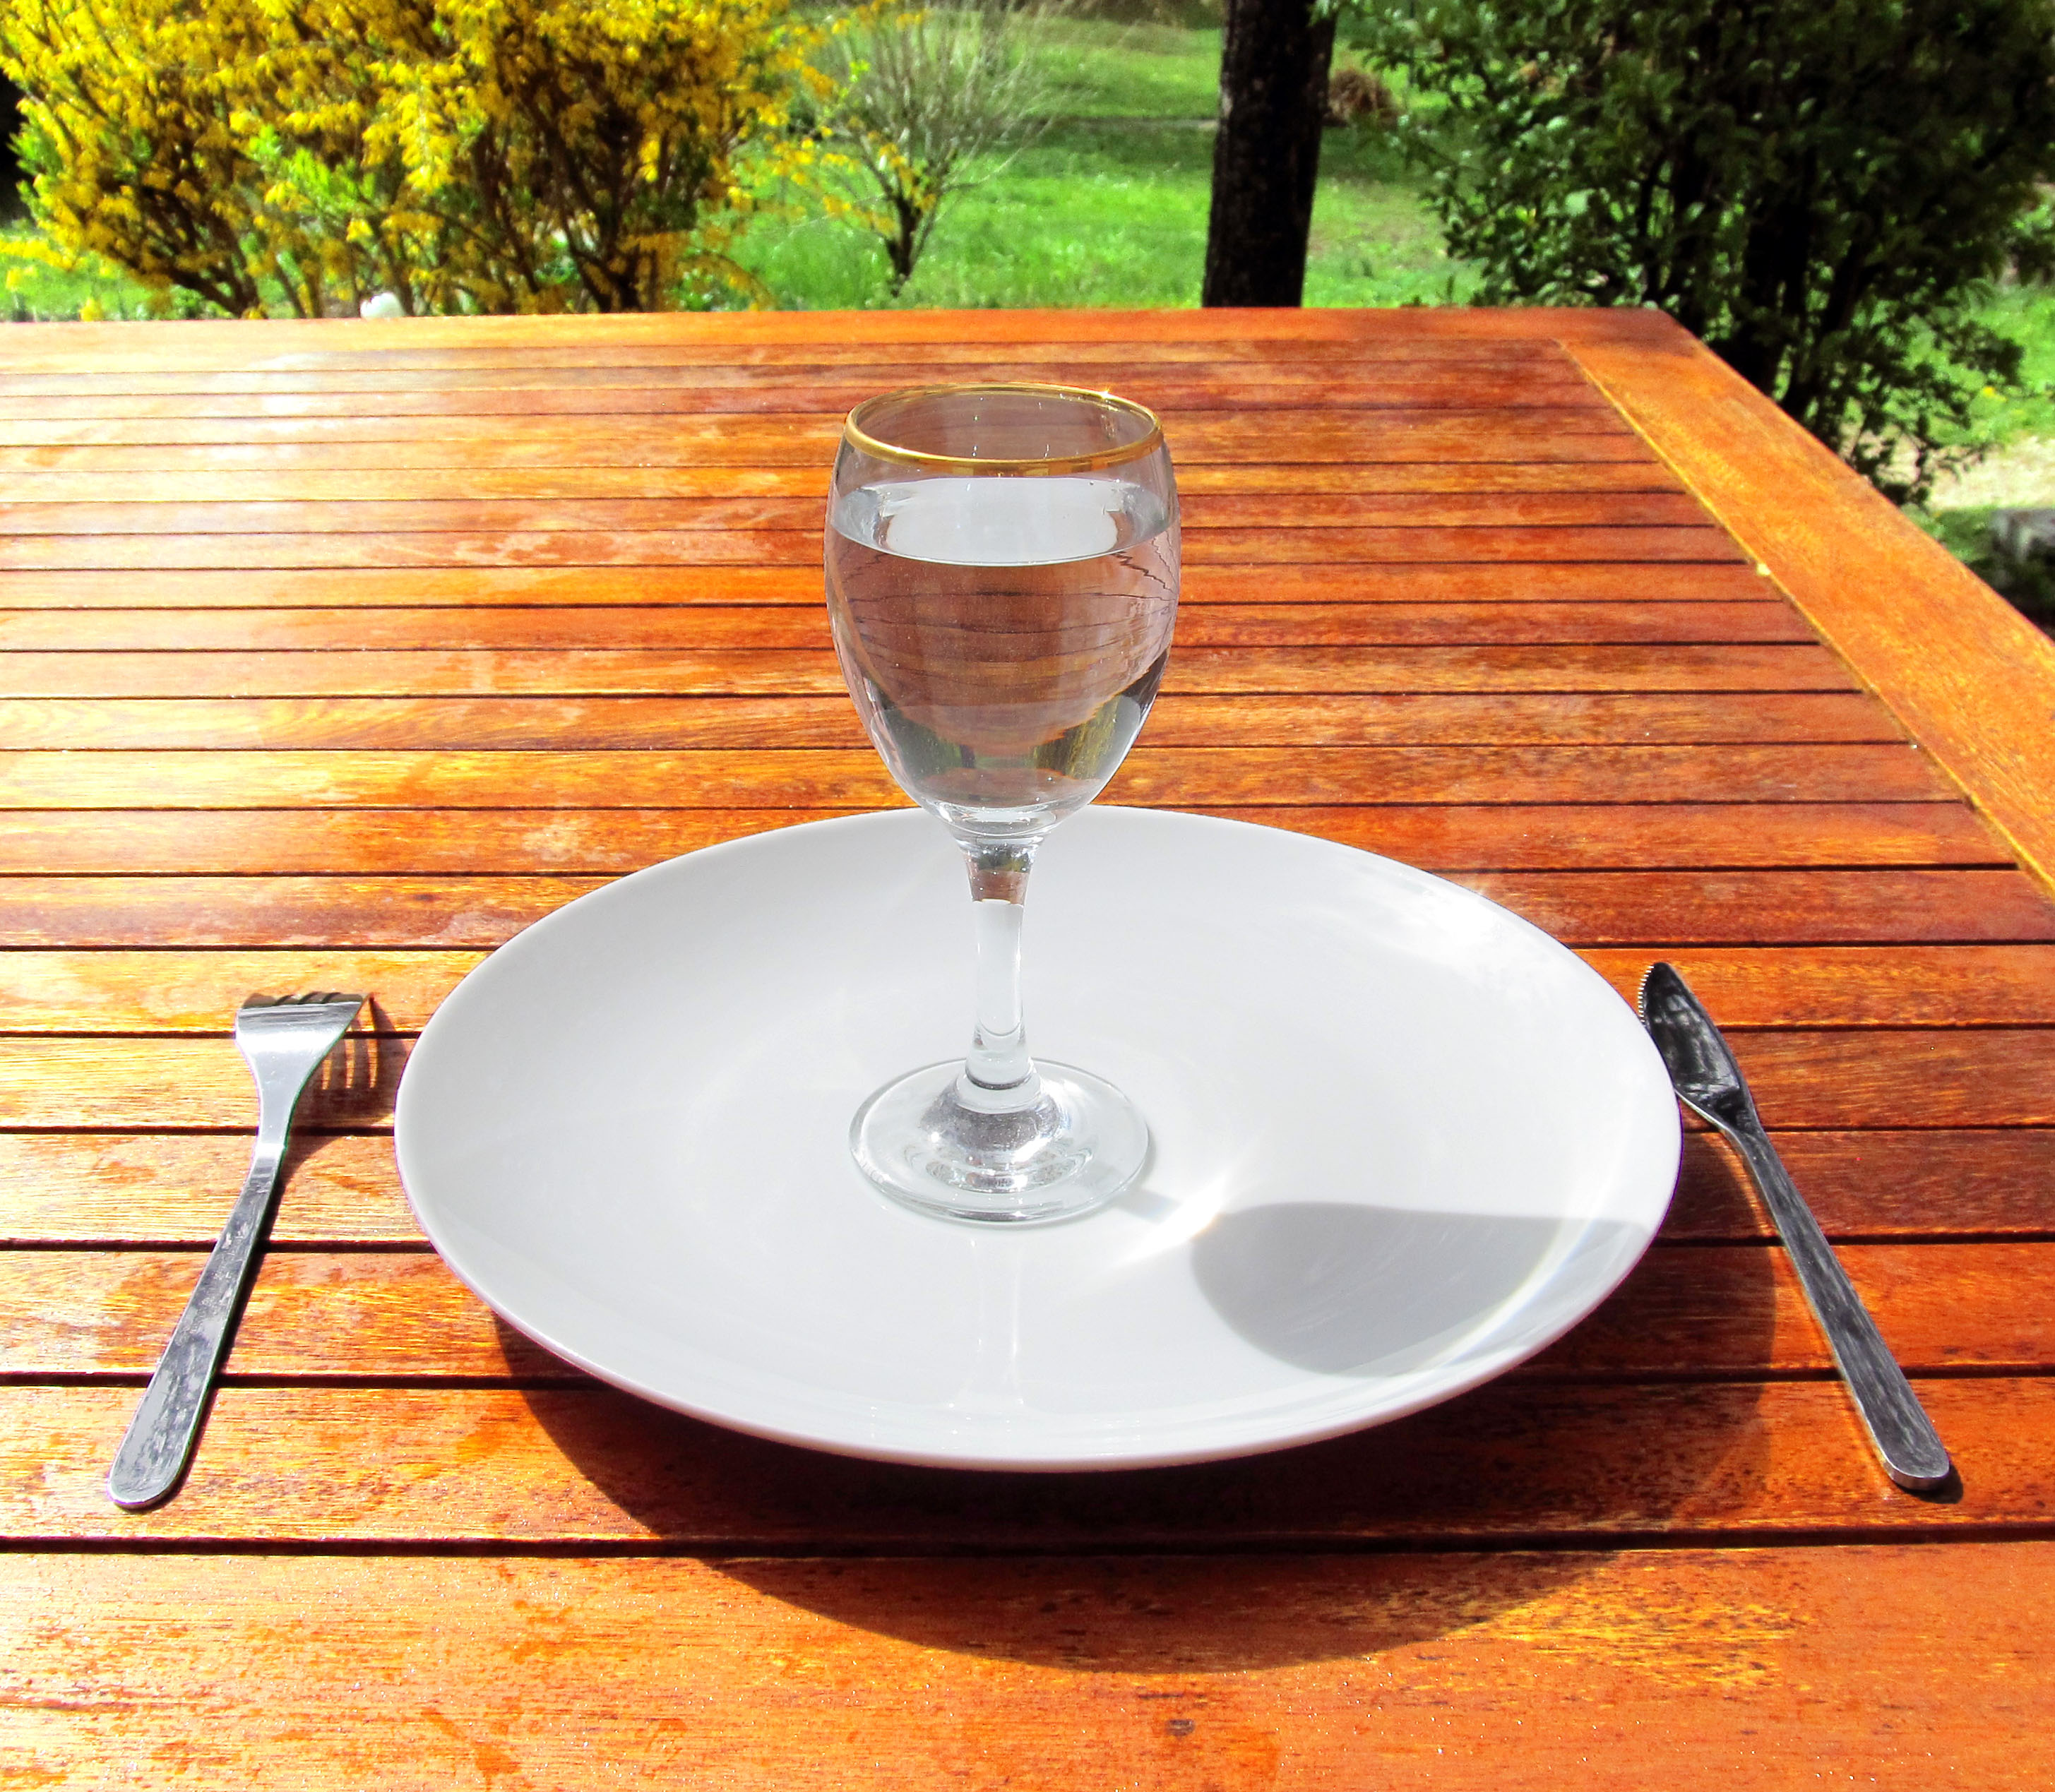 https://i0.wp.com/upload.wikimedia.org/wikipedia/commons/e/e5/Fasting_4-Fasting-a-glass-of-water-on-an-empty-plate.jpg